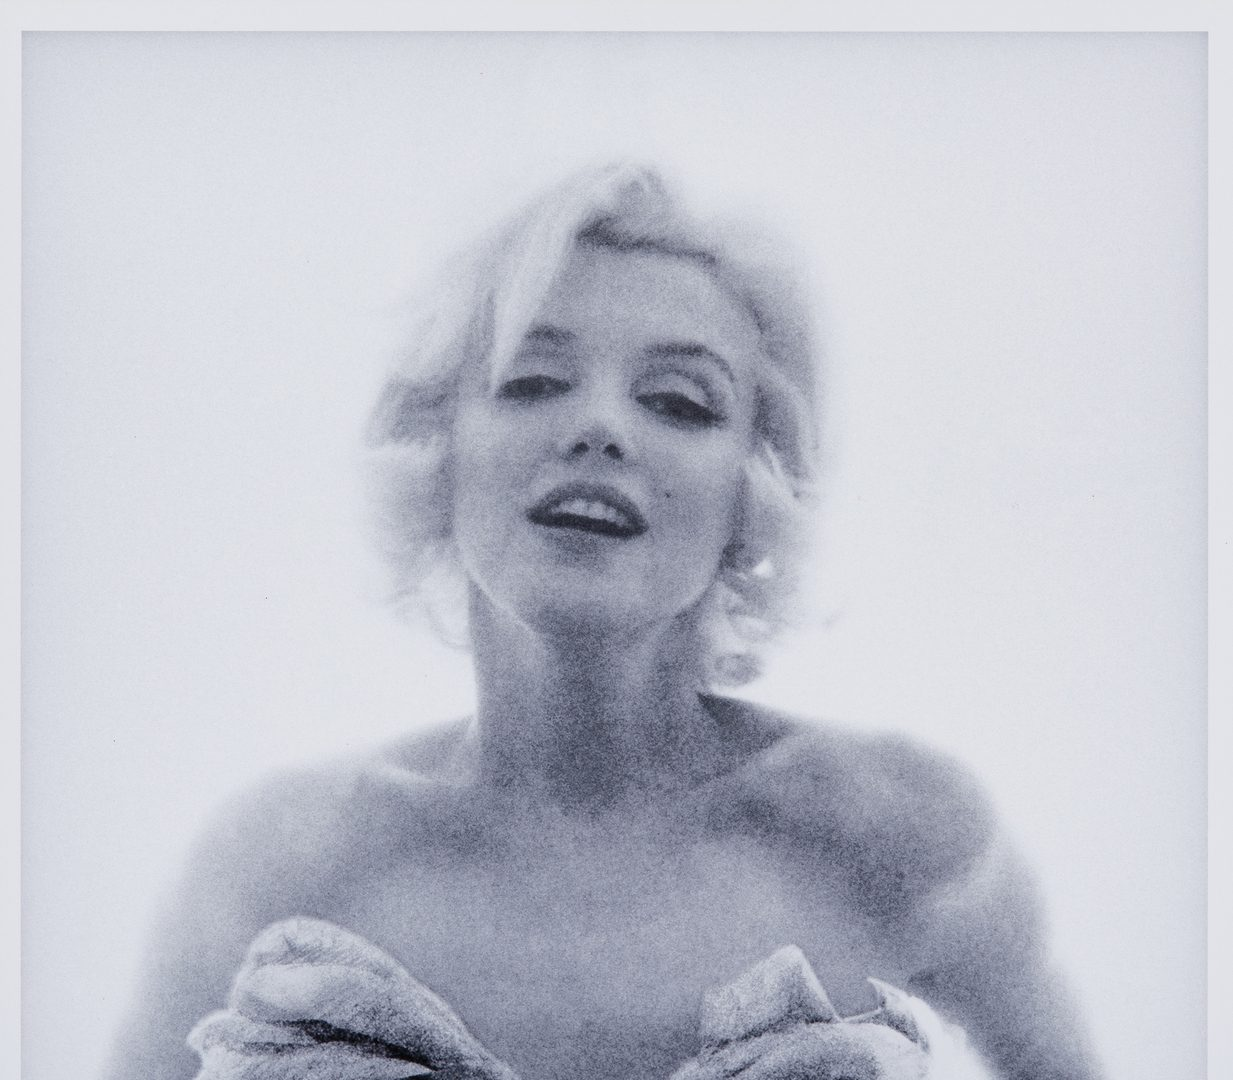 Lot 555: Bert Stern Photograph, Marilyn with Roses, Last Sitting